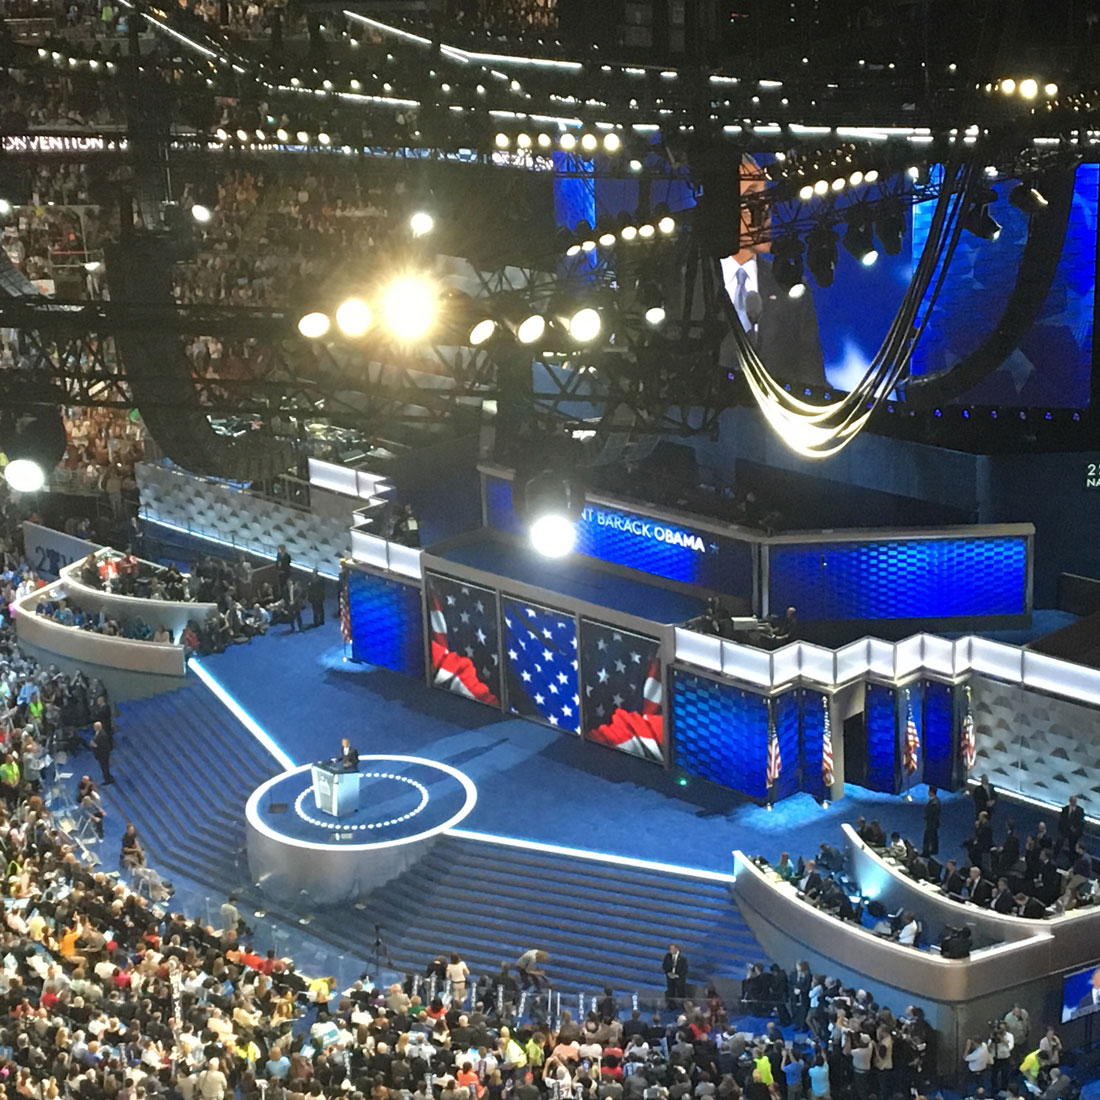 Democratic National Convention: Commenting the President Barack Obama's speech